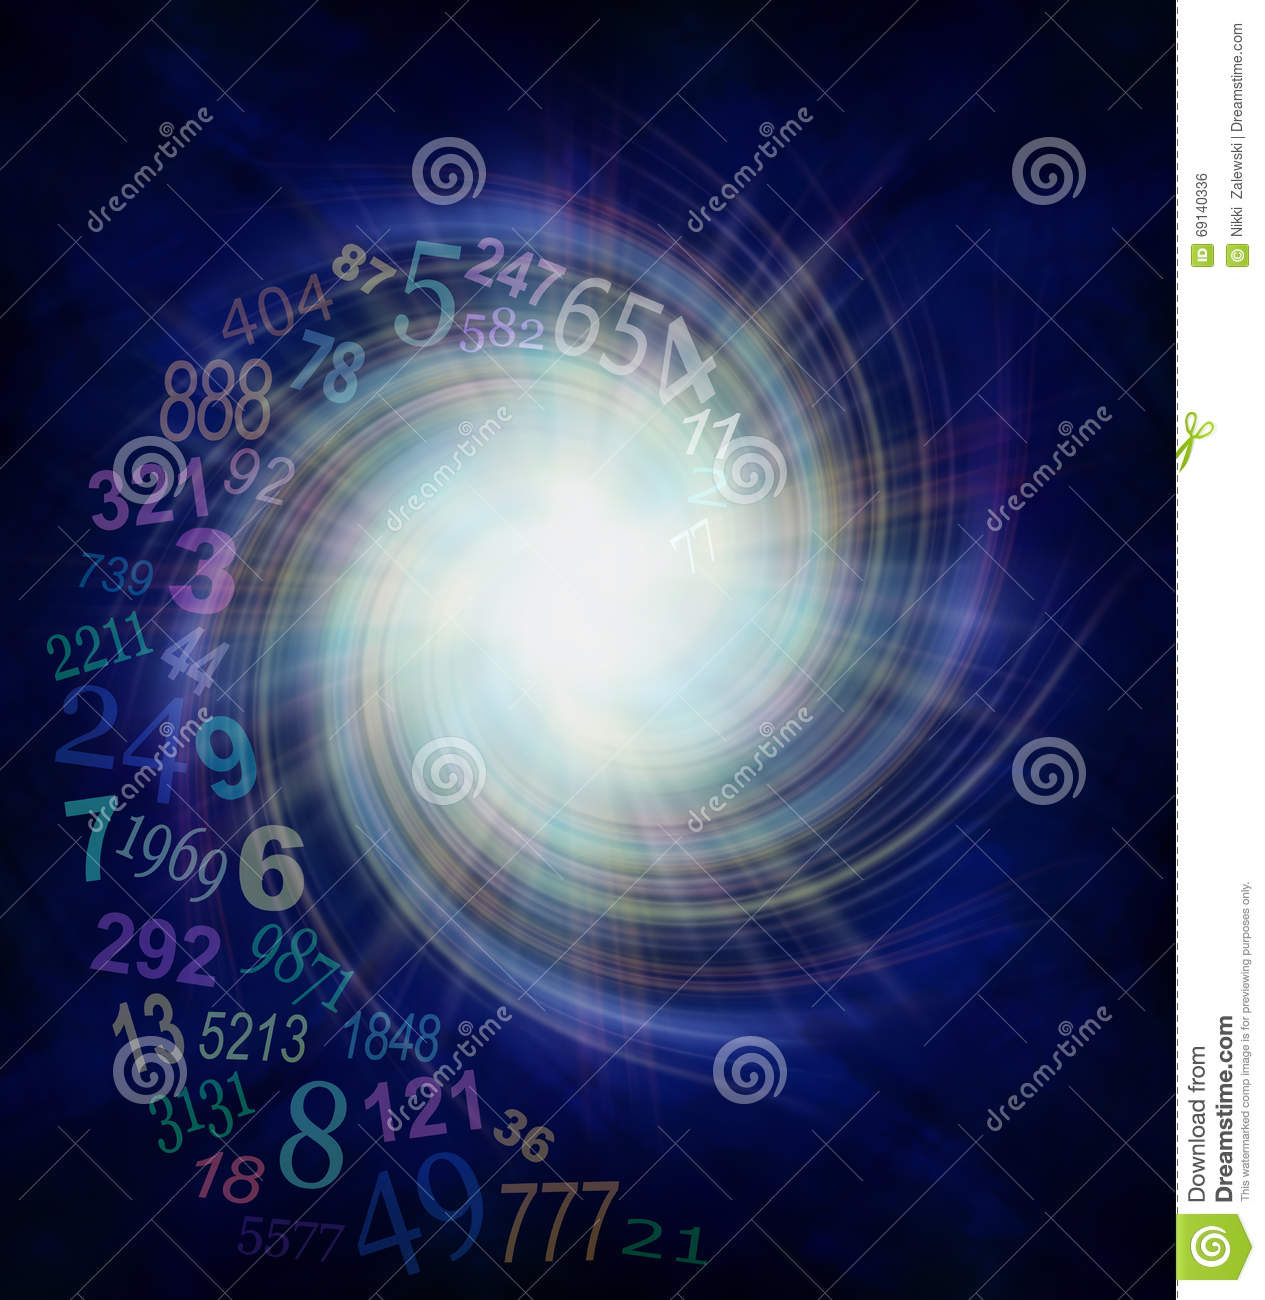 Serendipity cartoons illustrations vector stock images for Best house number numerology